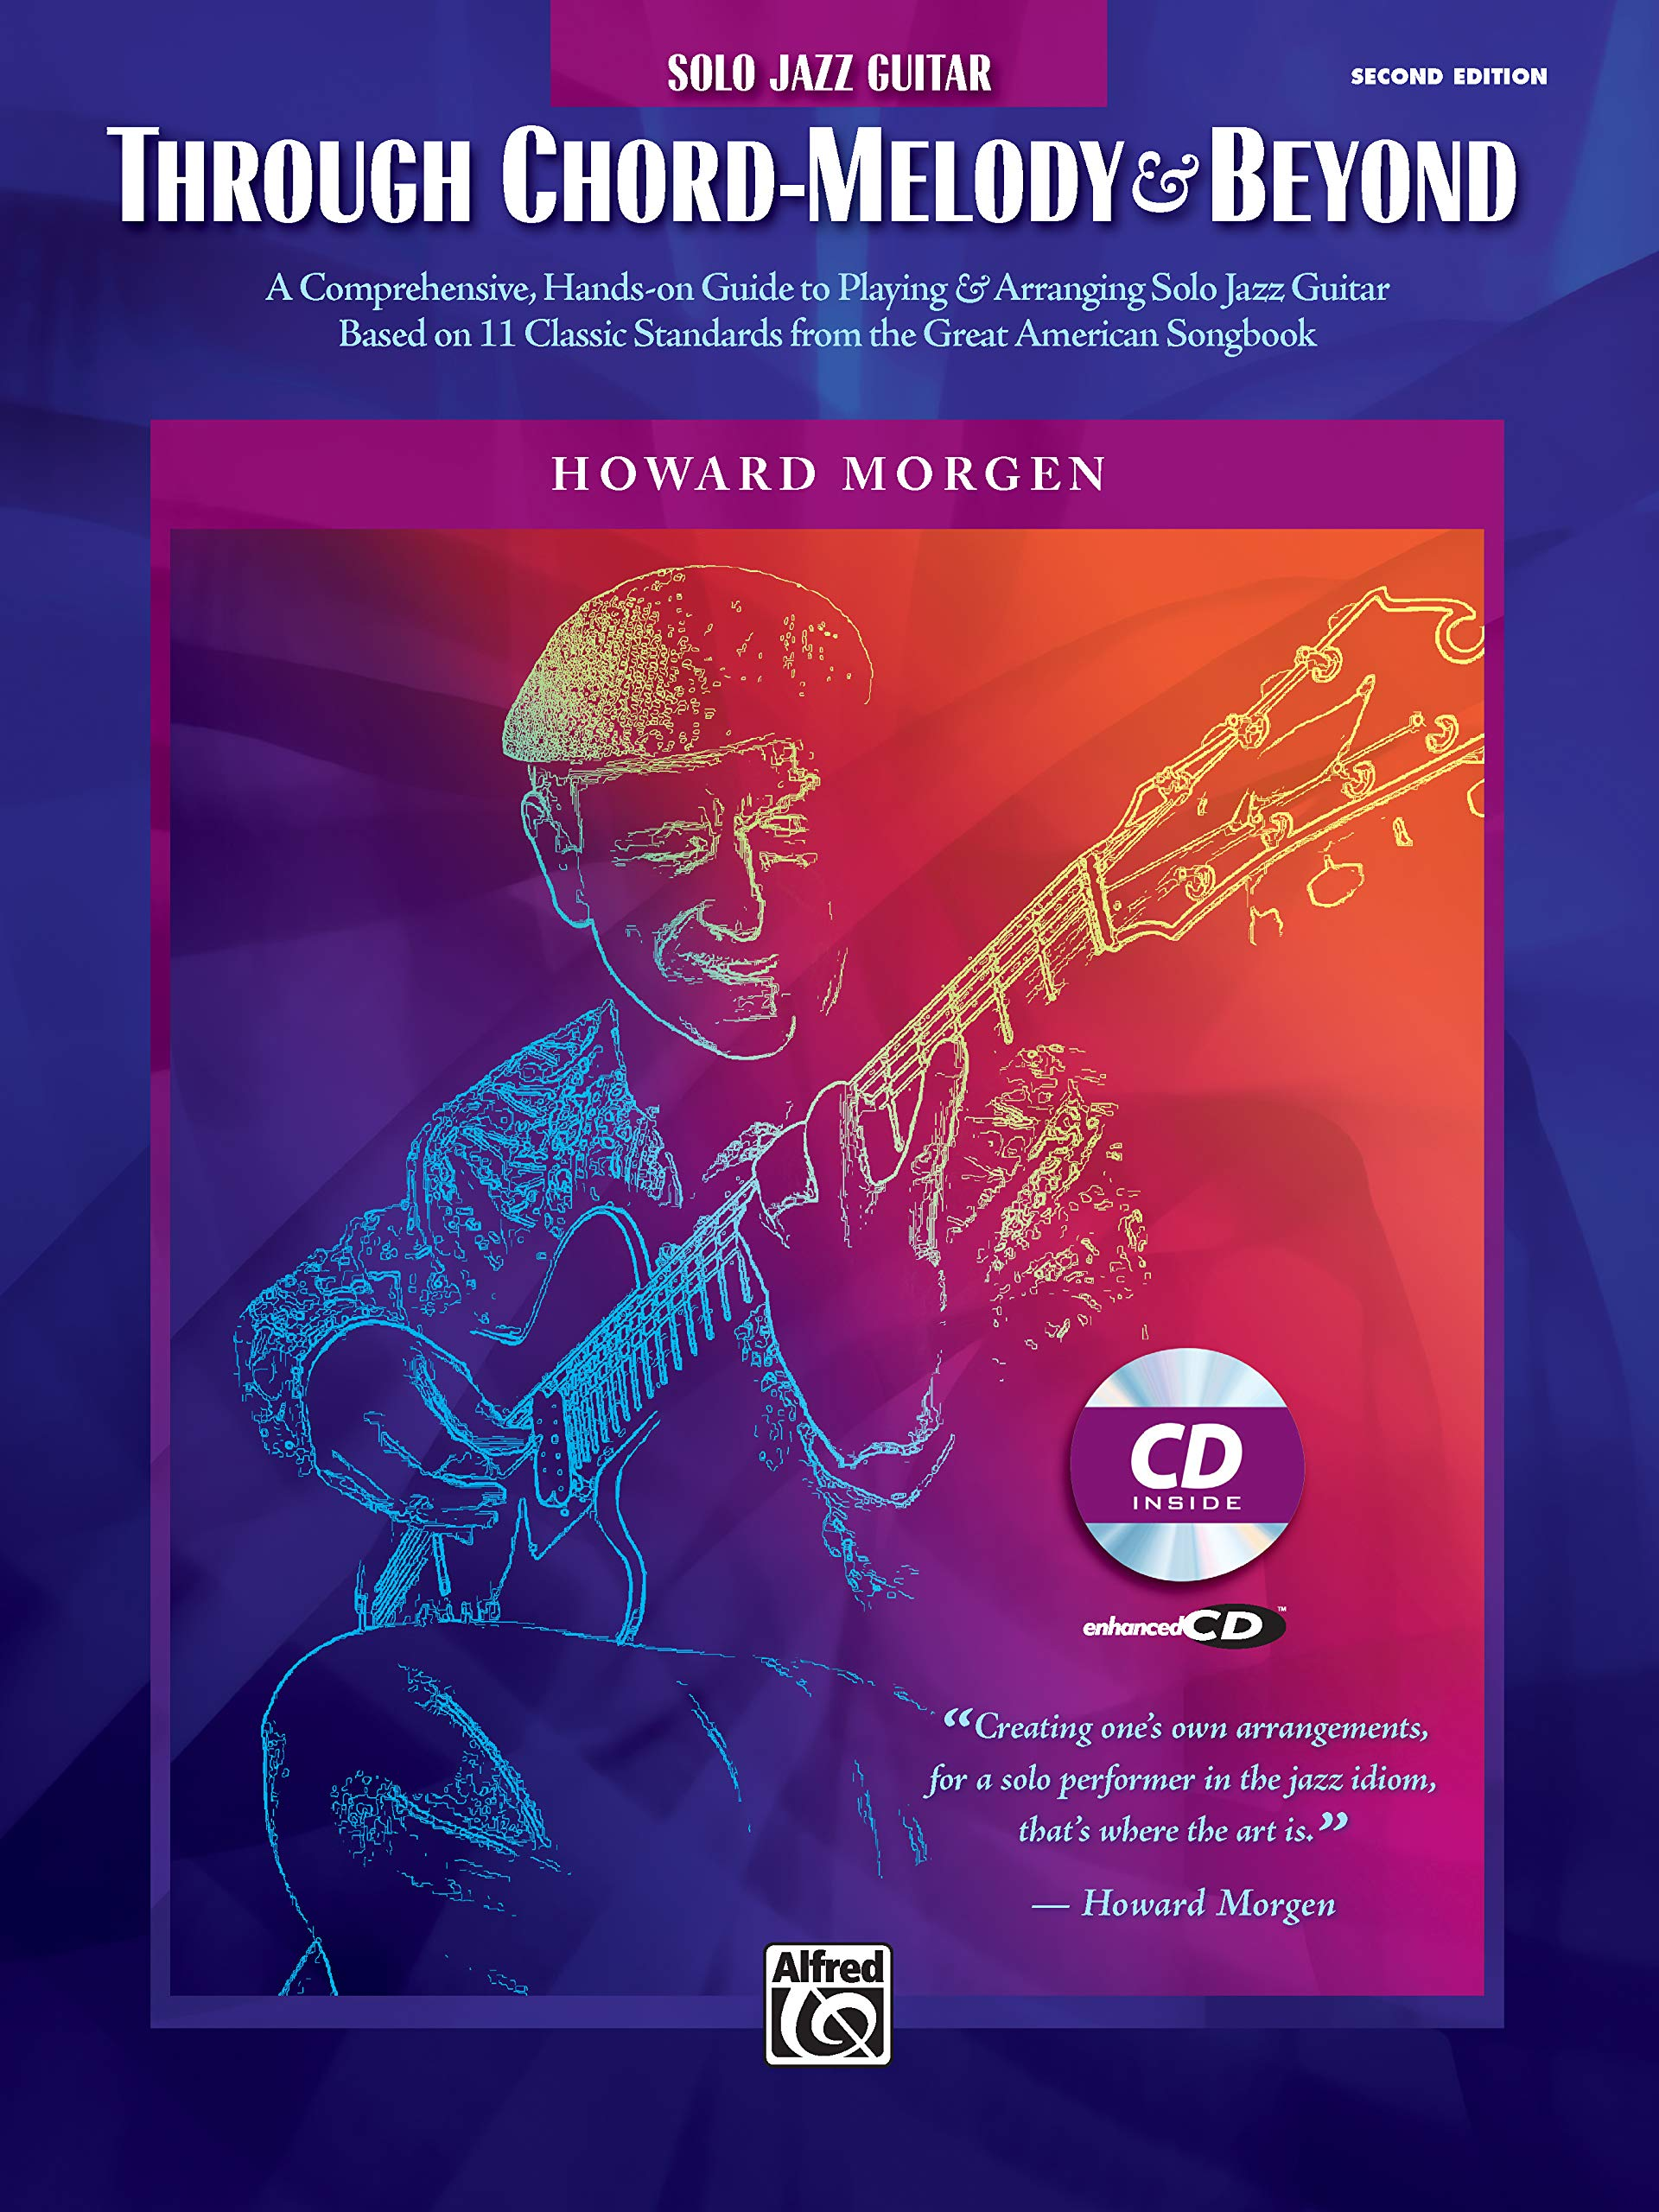 Through Chord-Melody & Beyond: A Comprehensive, Hands-on Guide to Playing & Arranging Solo Jazz Guitar Based on 11 Classic Standards from the Great American Songbook by Alfred